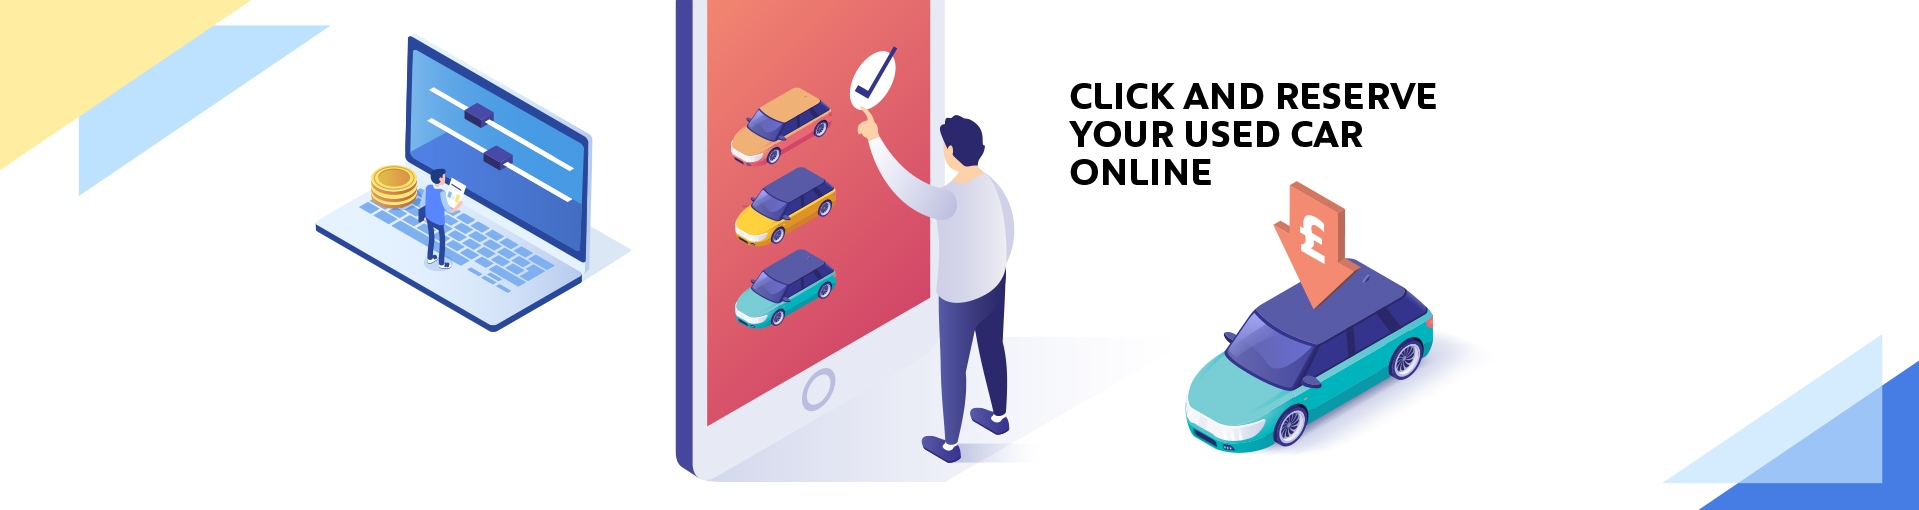 Buying Online - Used Vehicles